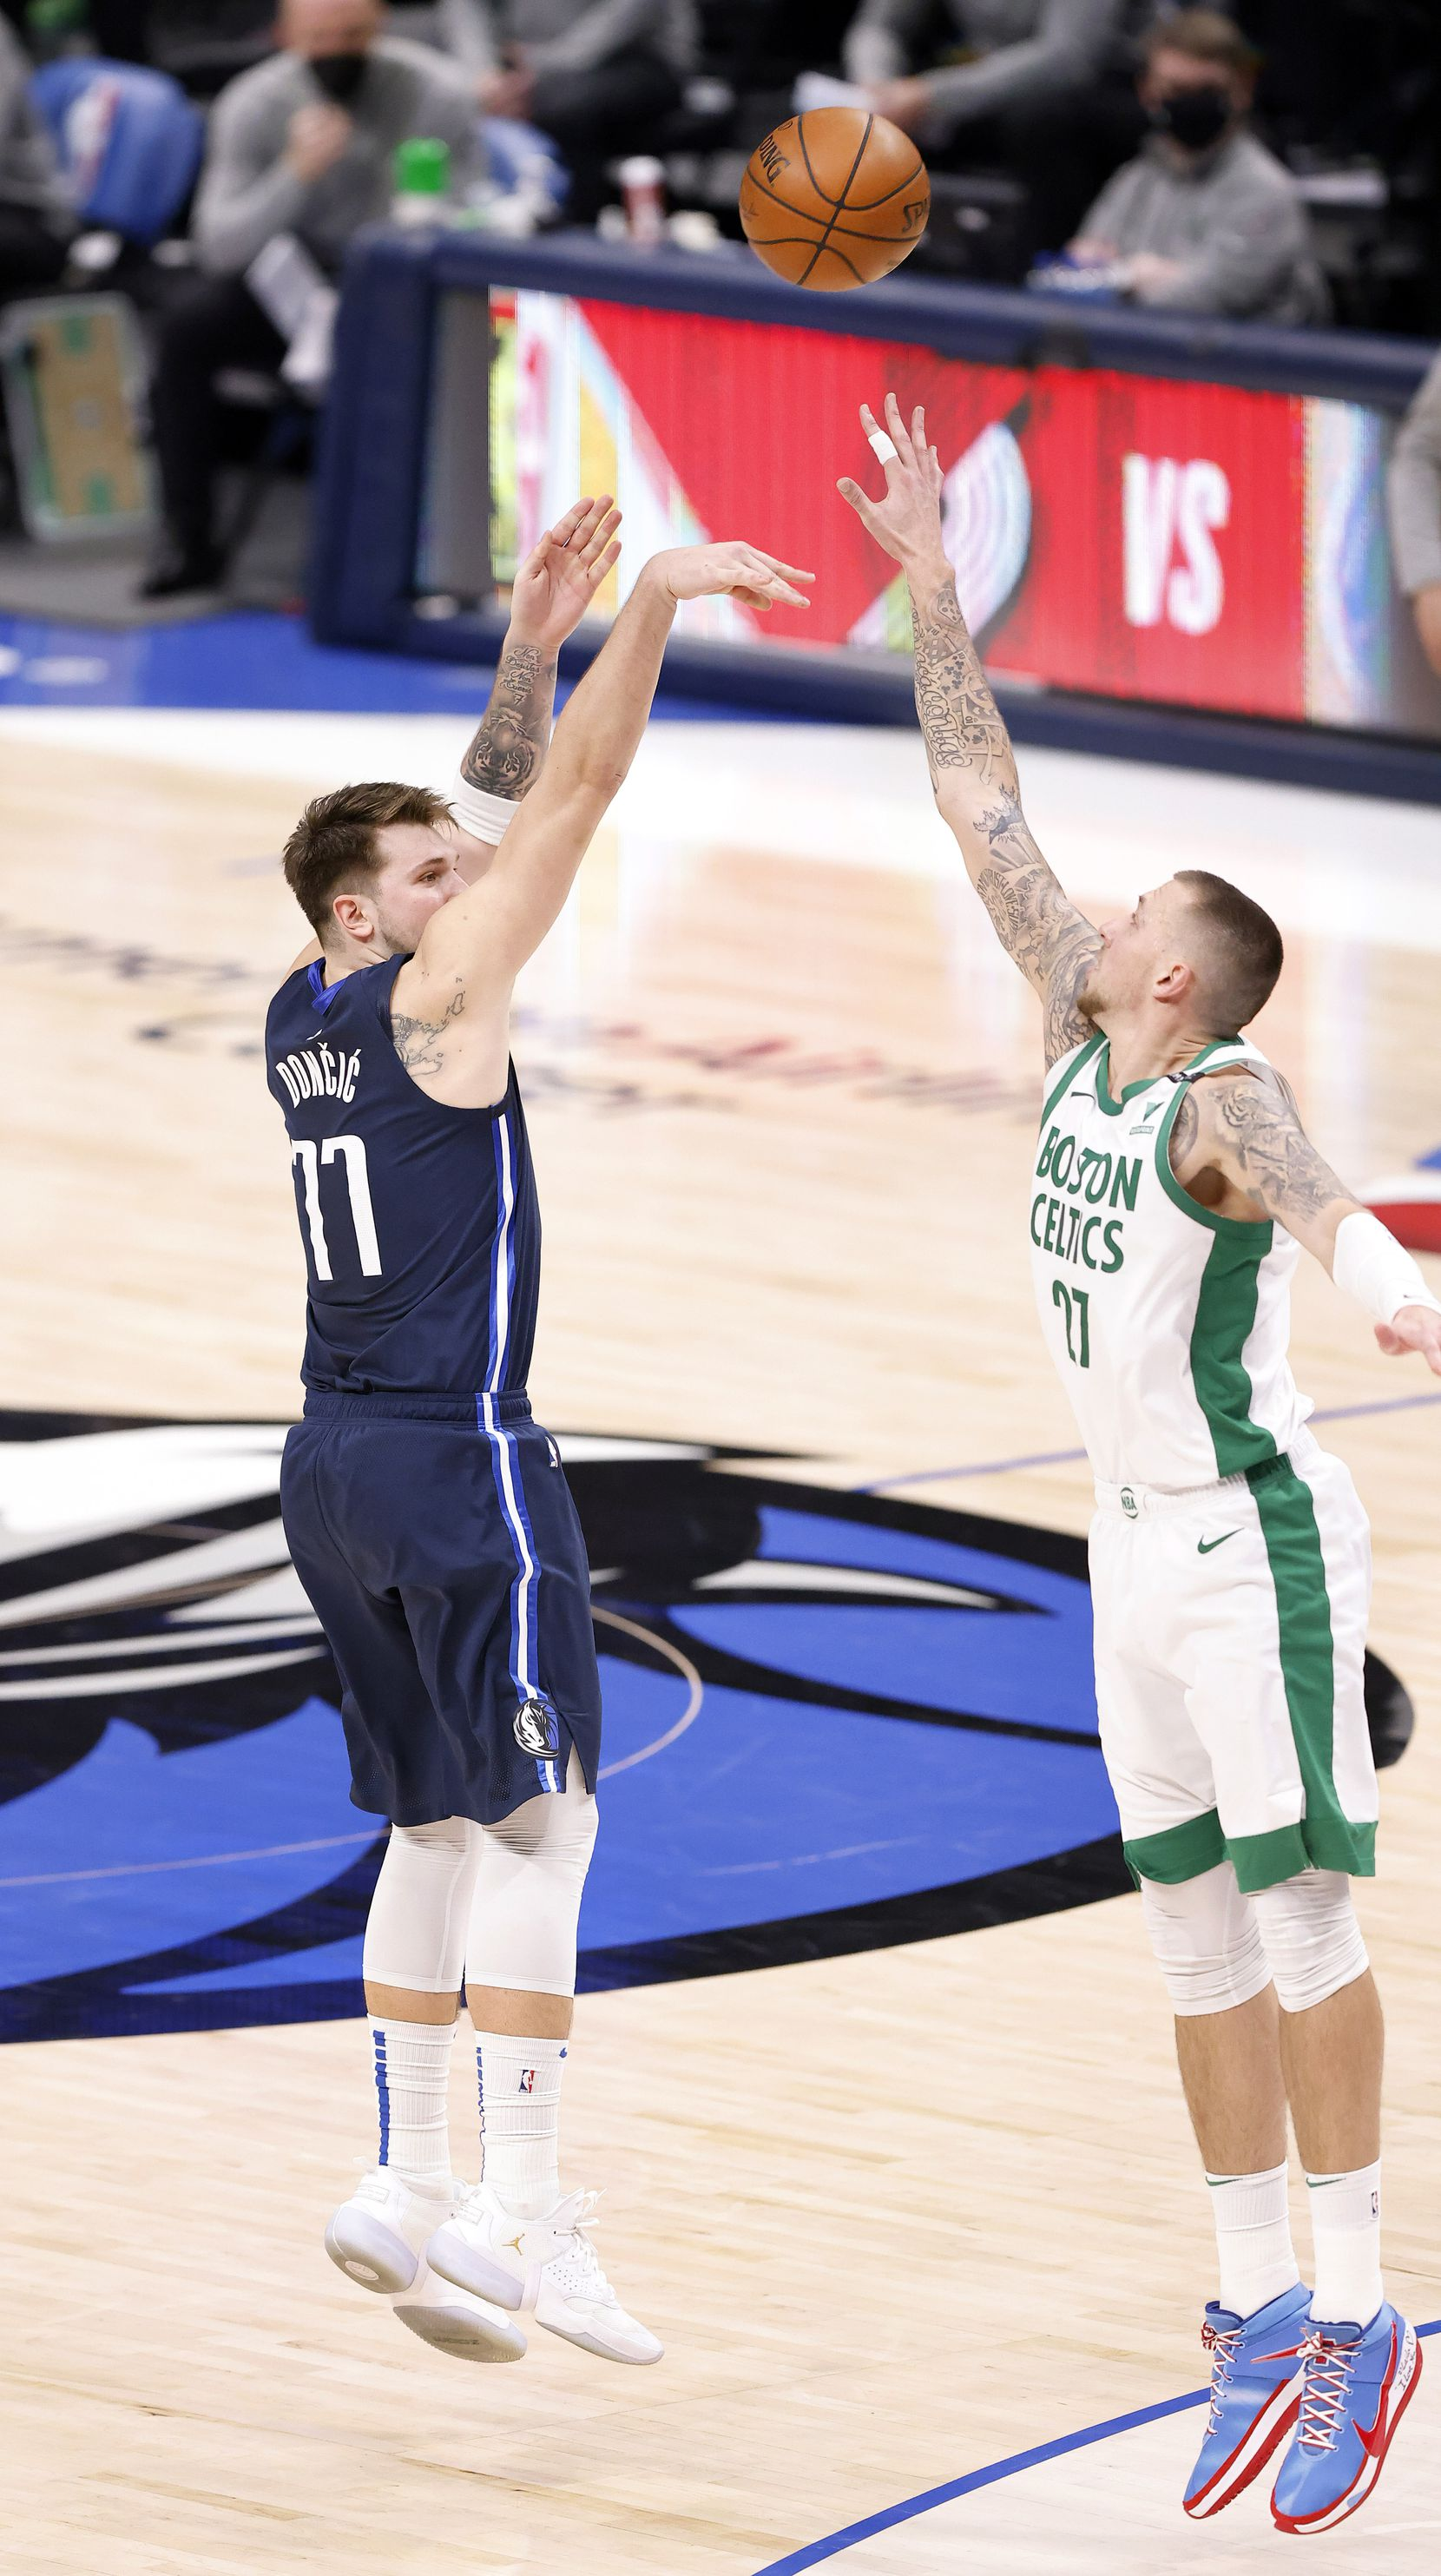 Dallas Mavericks guard Luka Doncic (77) made a late fourth quarter three-point shot over Boston Celtics center Daniel Theis (27) at the American Airlines Center in Dallas, Tuesday, February 23, 2021. (Tom Fox/The Dallas Morning News)